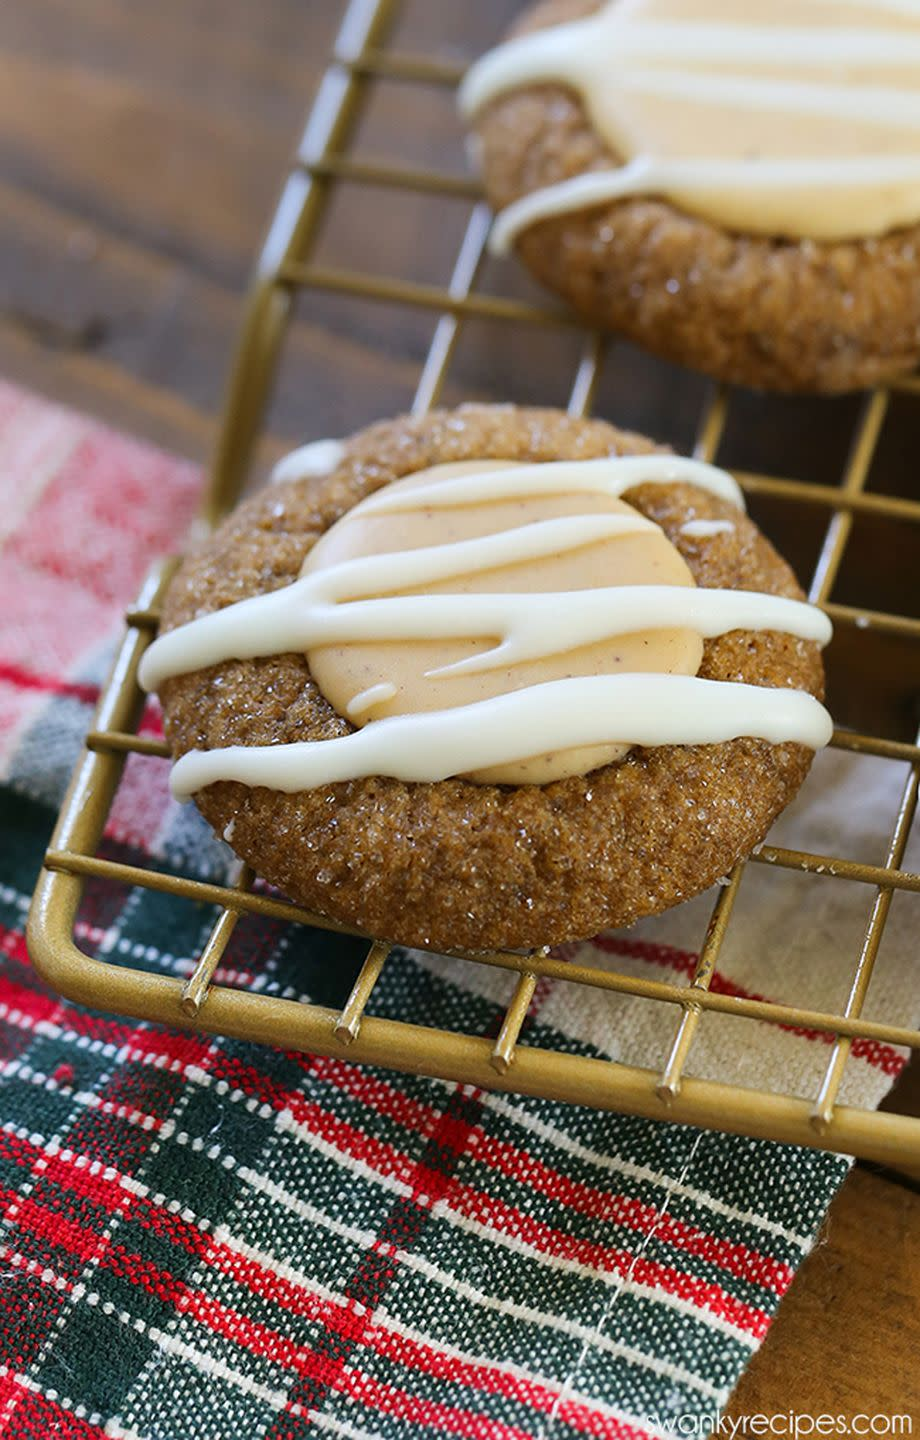 "<p>Upgrade your usual <a href=""https://www.countryliving.com/food-drinks/g3604/gingerbread-cookie-recipes/"" rel=""nofollow noopener"" target=""_blank"" data-ylk=""slk:gingerbread"" class=""link rapid-noclick-resp"">gingerbread</a> recipe with a melt-in-your-mouth spiced white chocolate filling.</p><p><strong>Get the recipe at <a href=""http://www.swankyrecipes.com/gingerbread-thumbprint-cookies.html"" rel=""nofollow noopener"" target=""_blank"" data-ylk=""slk:Swanky Recipes"" class=""link rapid-noclick-resp"">Swanky Recipes</a>.</strong></p><p><a class=""link rapid-noclick-resp"" href=""https://www.amazon.com/gp/product/B0000CDVD2?tag=syn-yahoo-20&ascsubtag=%5Bartid%7C10050.g.647%5Bsrc%7Cyahoo-us"" rel=""nofollow noopener"" target=""_blank"" data-ylk=""slk:SHOP COOKIE SCOOPS"">SHOP COOKIE SCOOPS</a></p>"